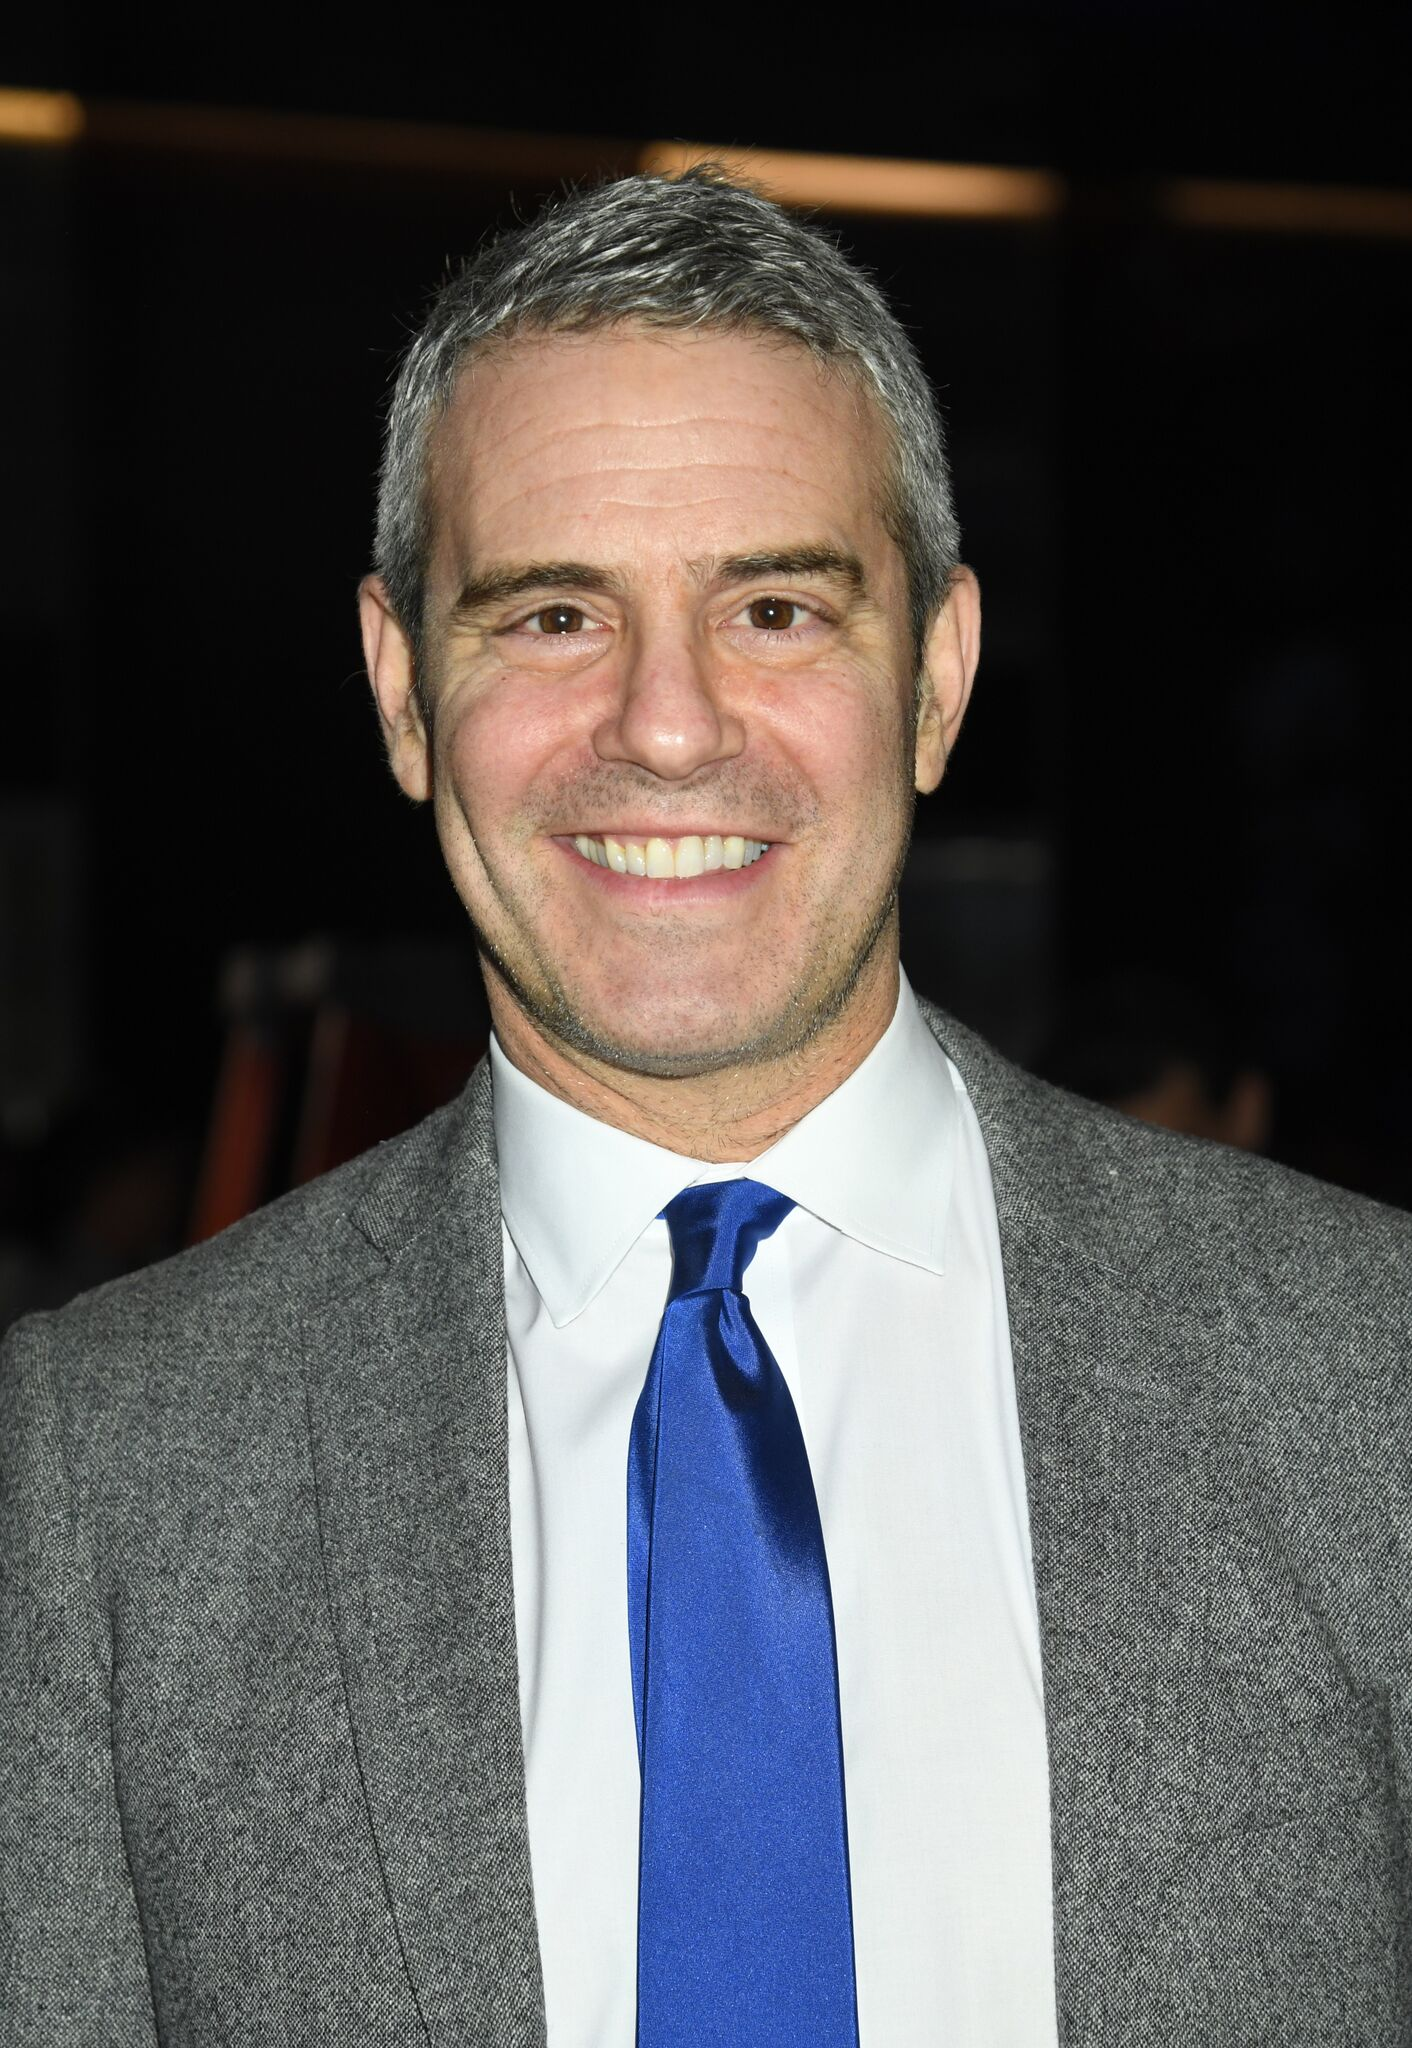 Andy Cohen attends the Watches Of Switzerland Hudson Yards opening on March 14, 2019    Getty Images